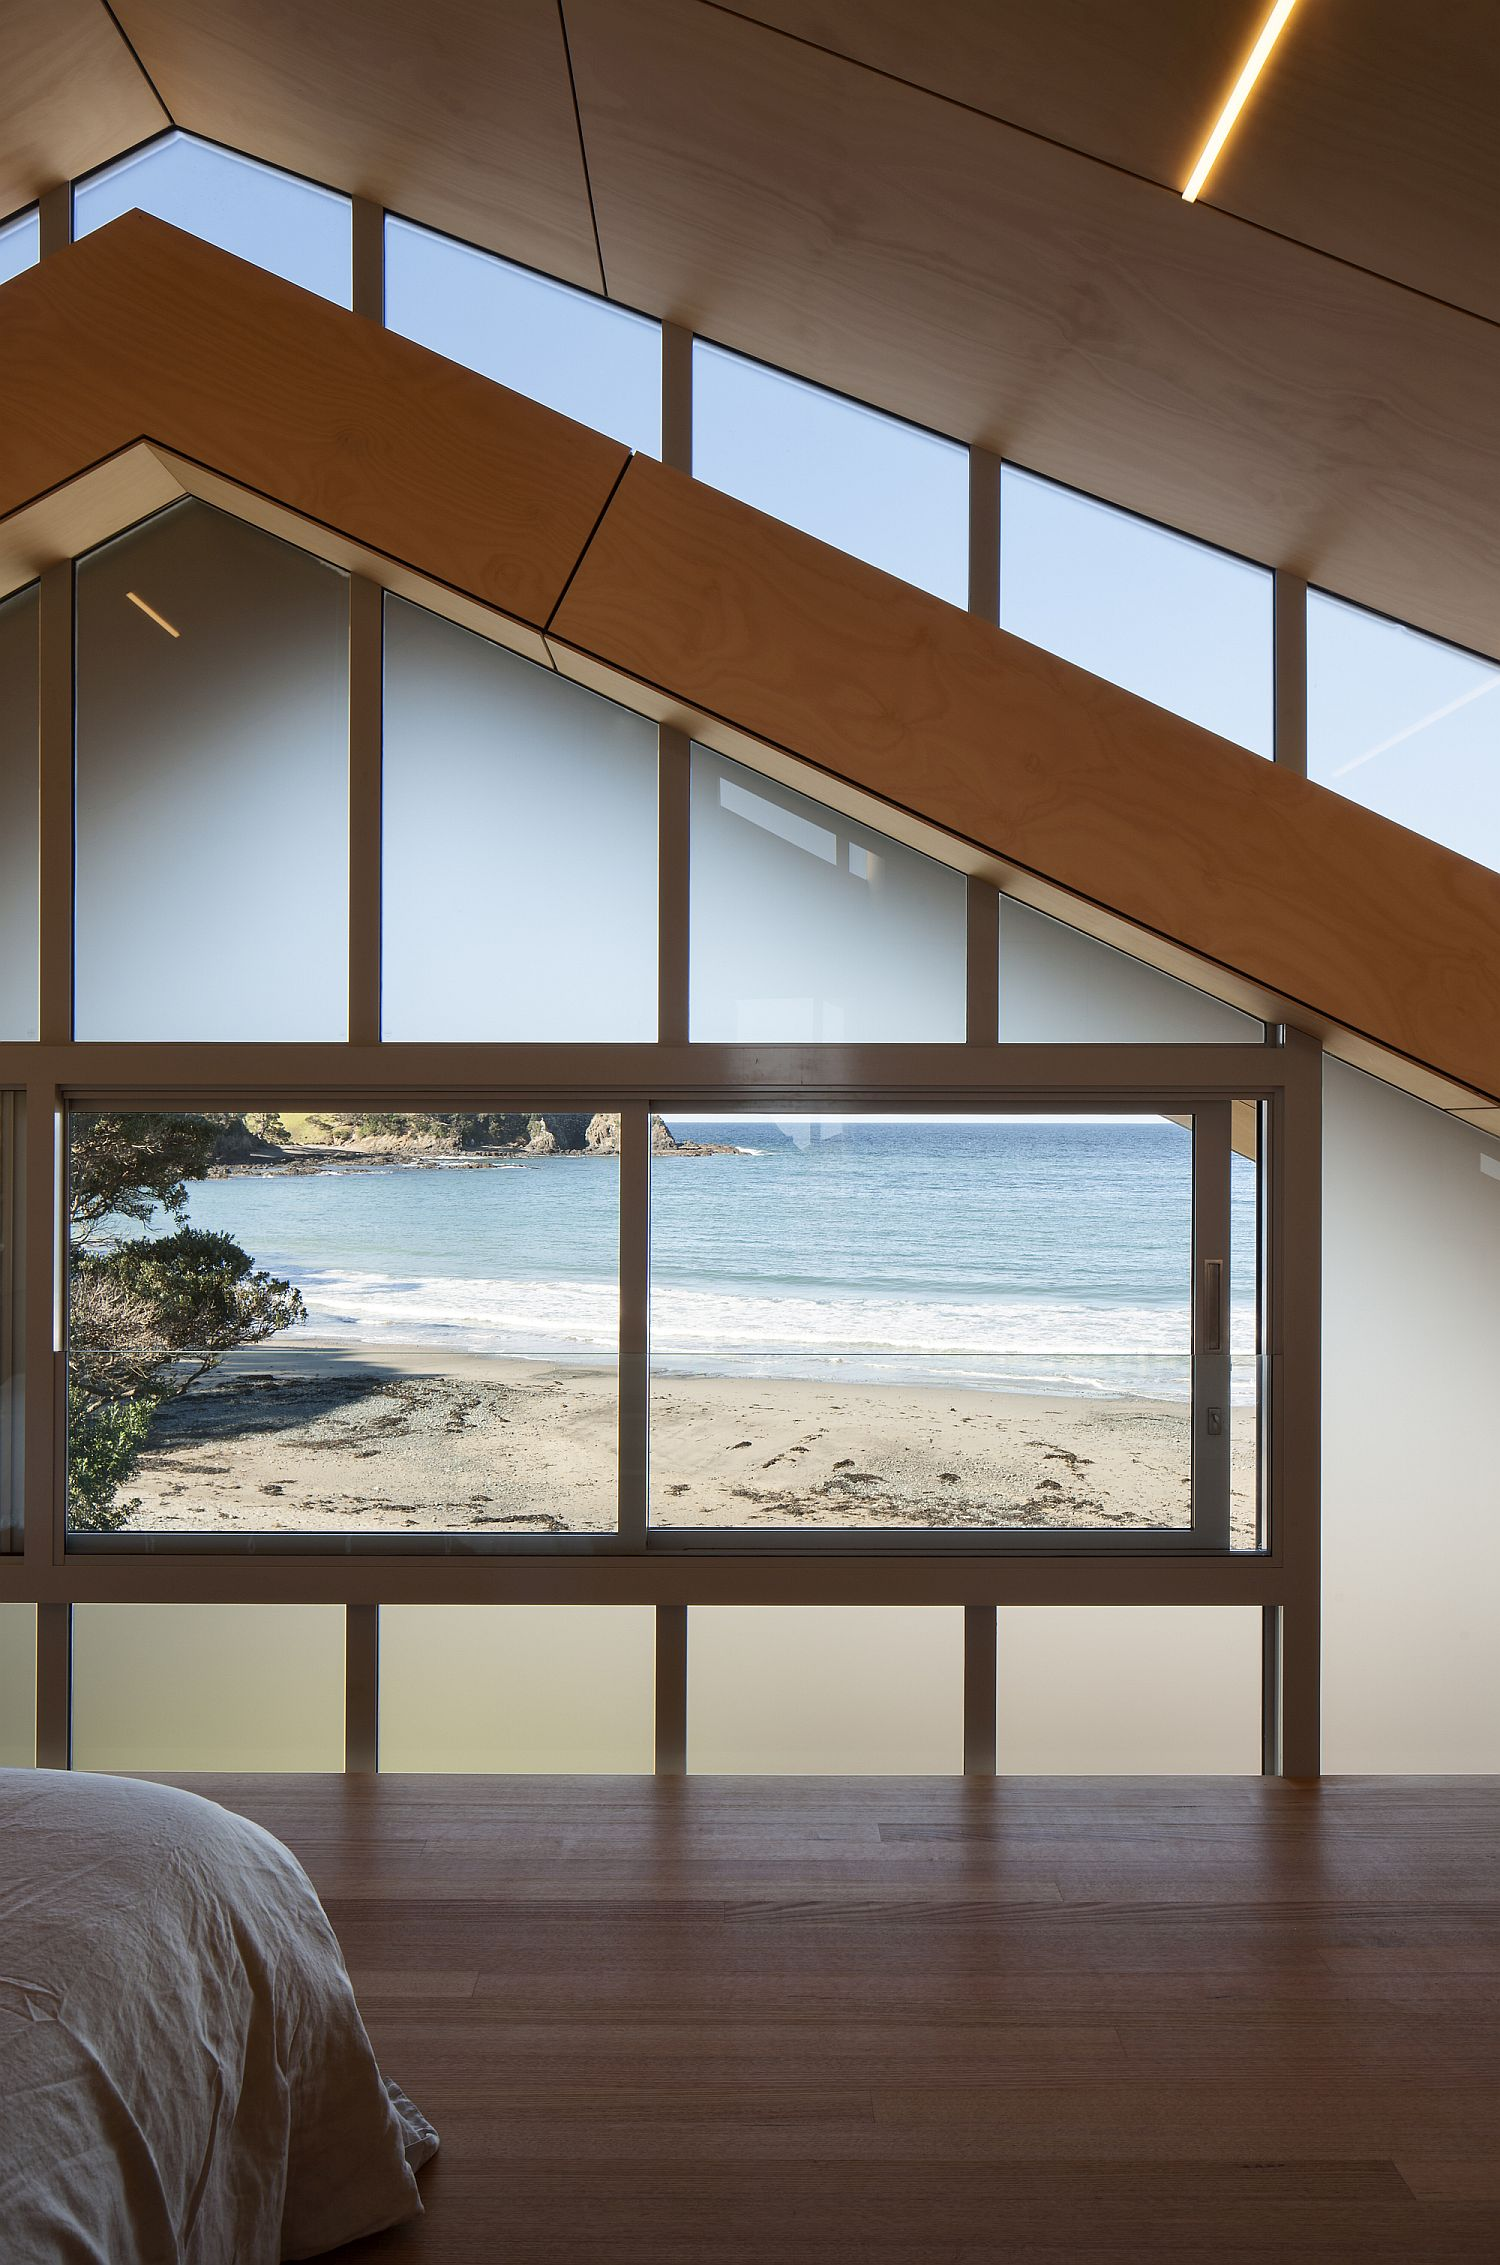 Amazing view of the beach from the comfort of the bedroom